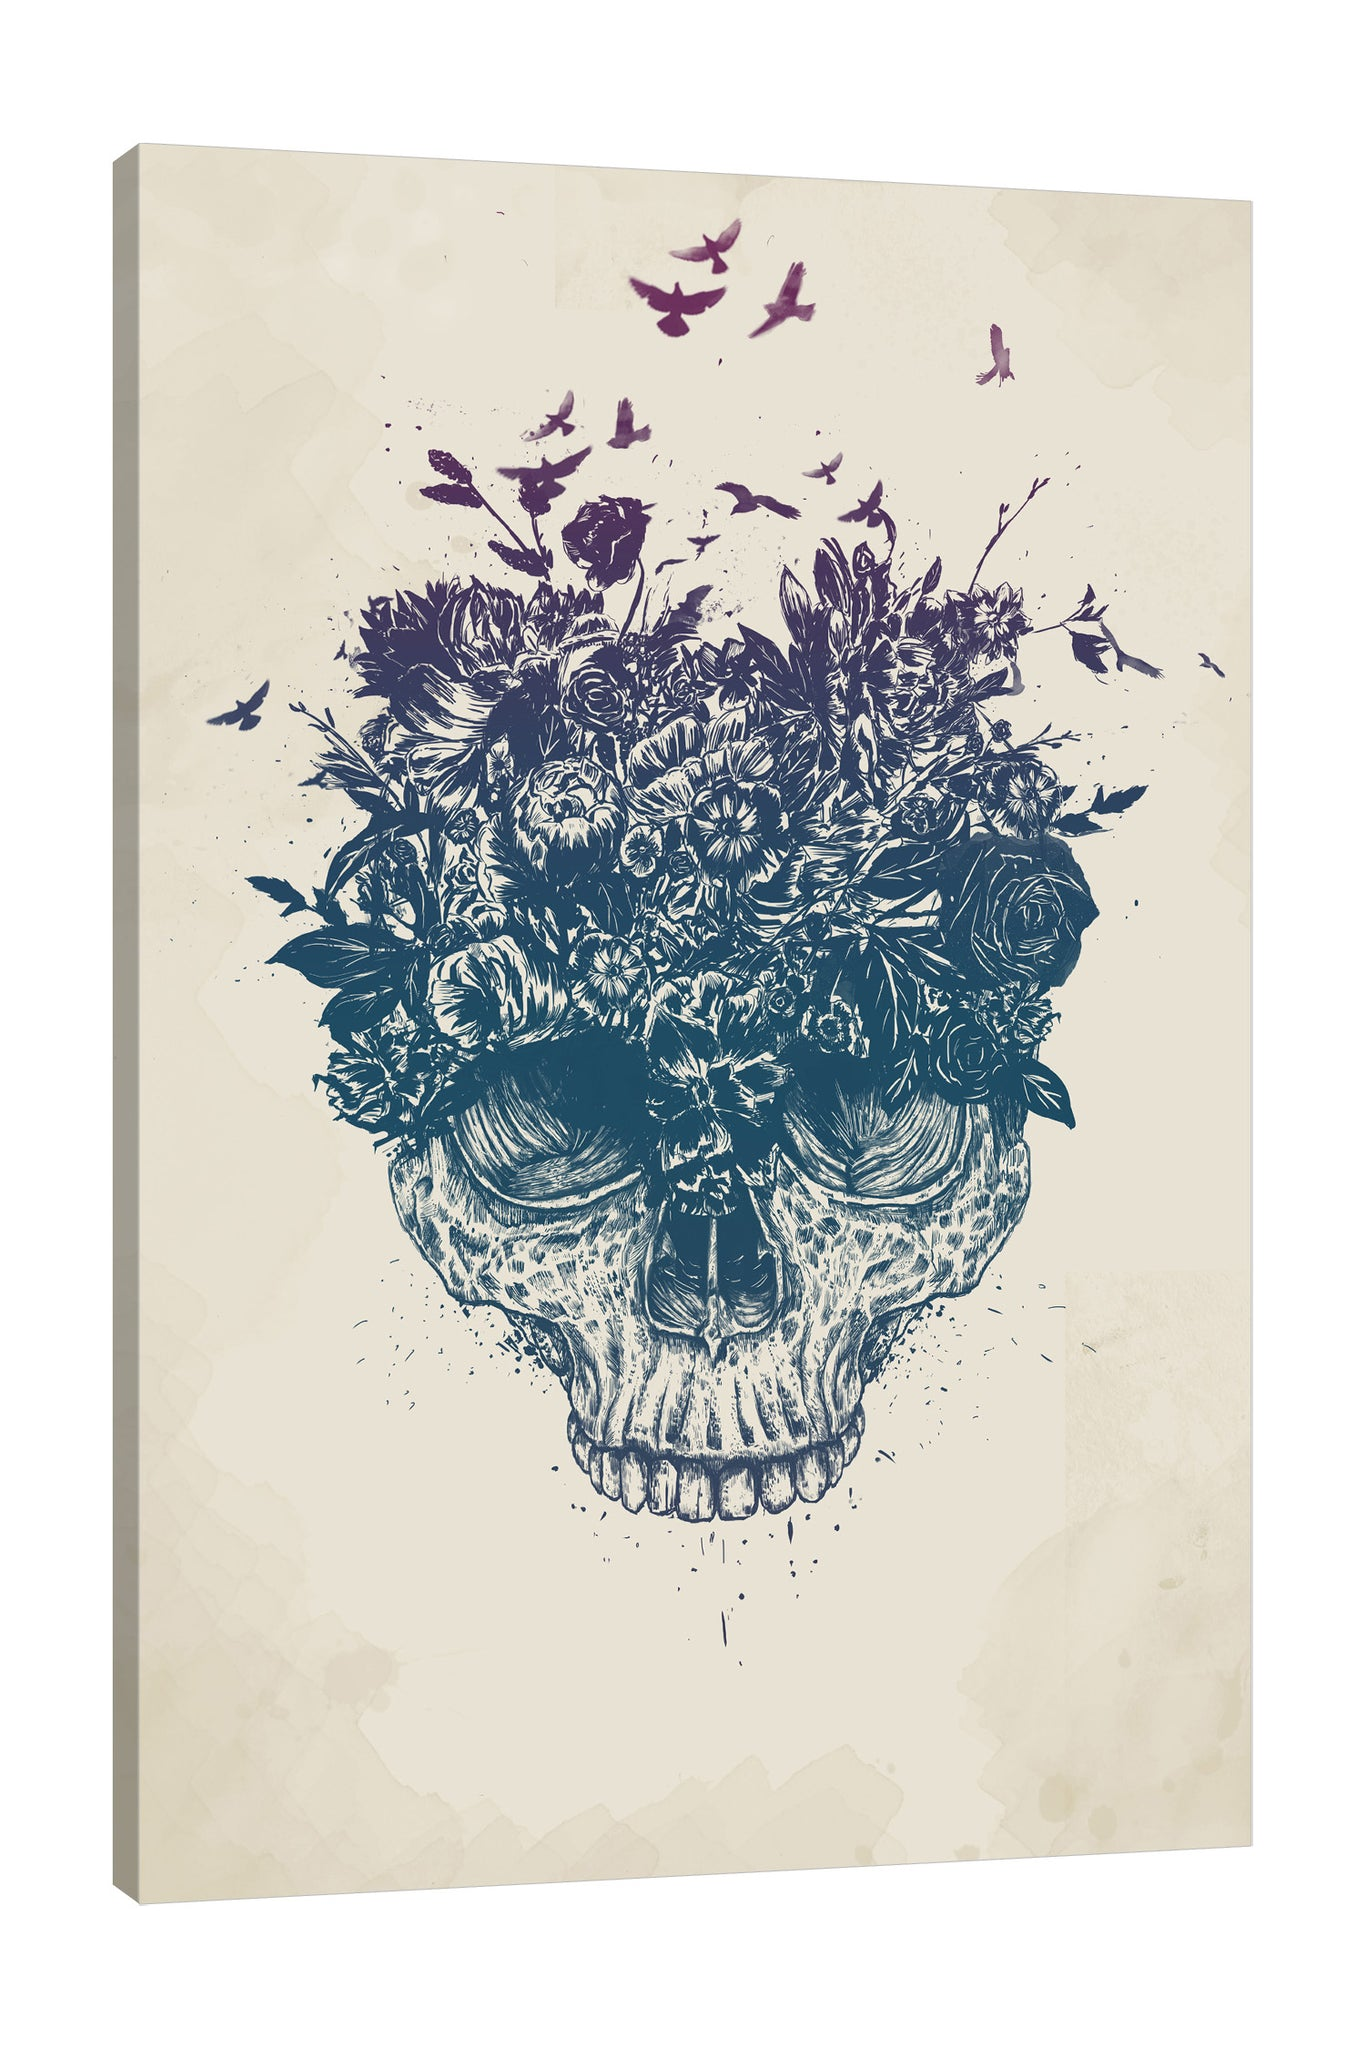 Balazs-Solti,Modern & Contemporary,Animals,Floral & Botanical,People,bones,bone,skulls,skull,florals,floral,flower,flowers,birds,bird,animals,animal,Mist Gray,White,Gray,Black,Teal Blue,Lime Green,Purple,Charcoal Gray